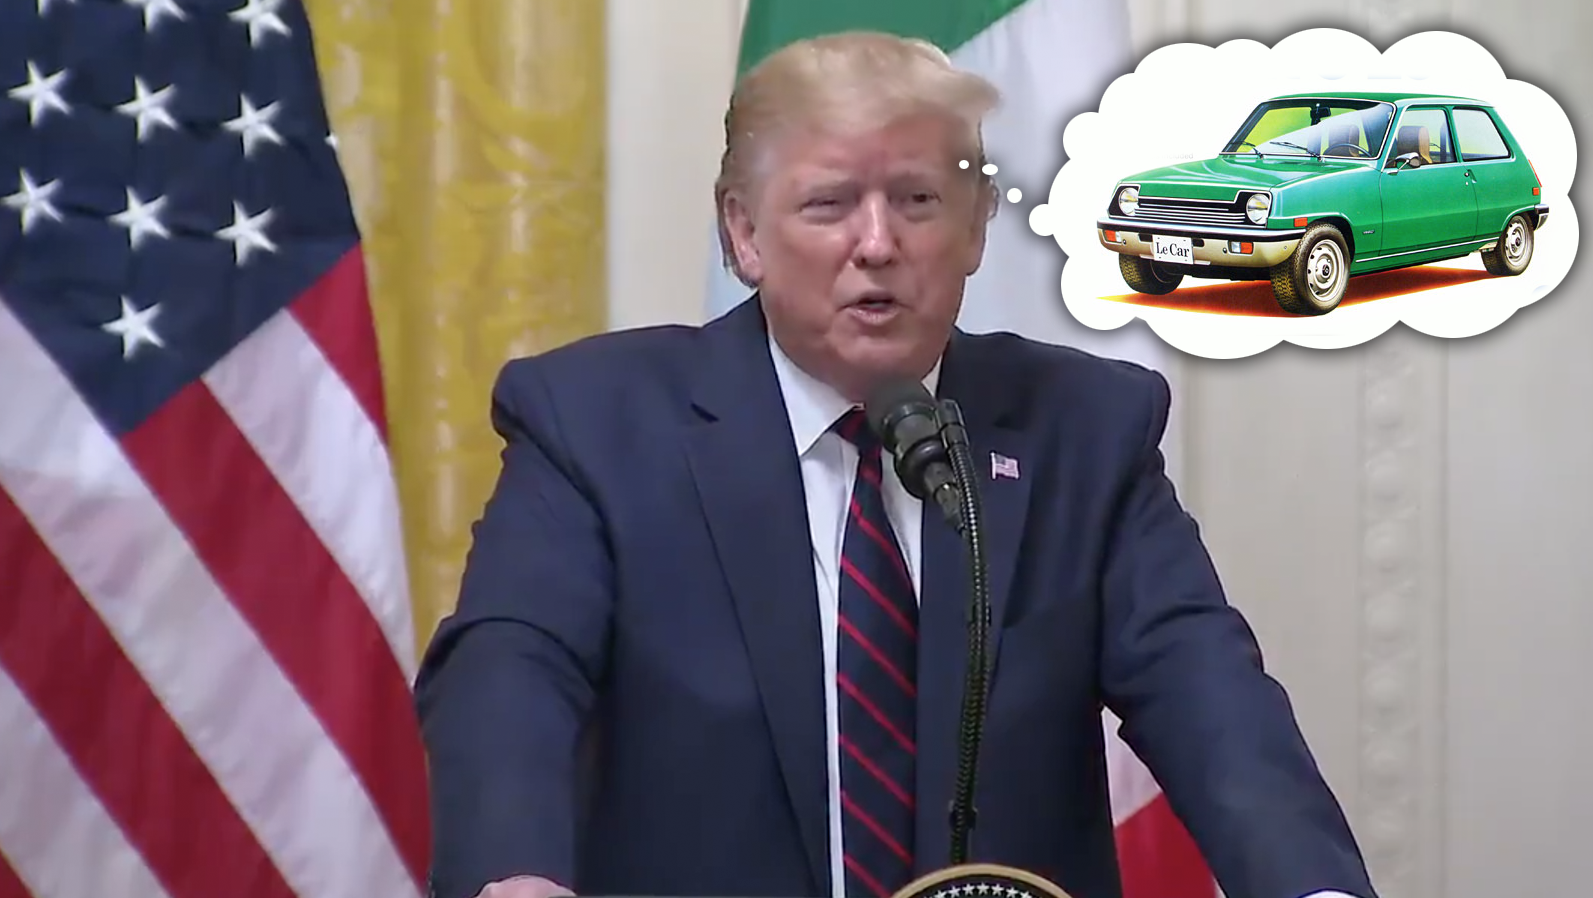 Someone Tell Trump He Can't Actually Buy A New LeCar